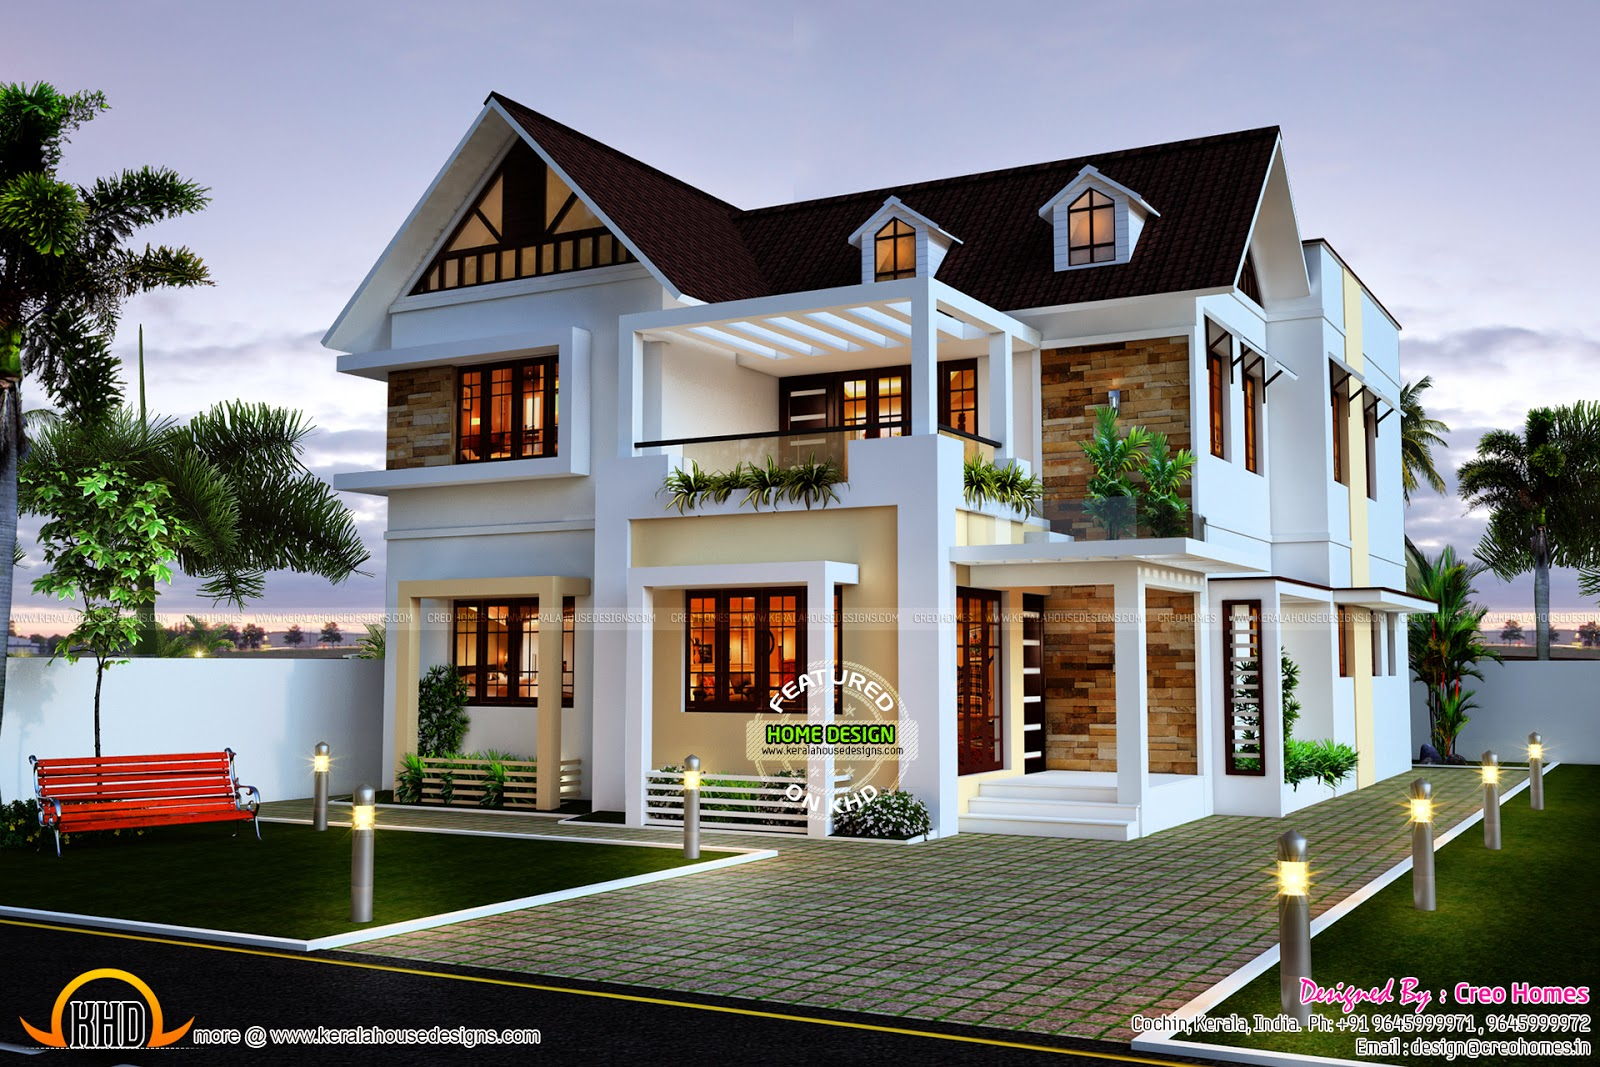 kerala home design and floor plans home design on kerala home design blogspot - Home Design Blogspot